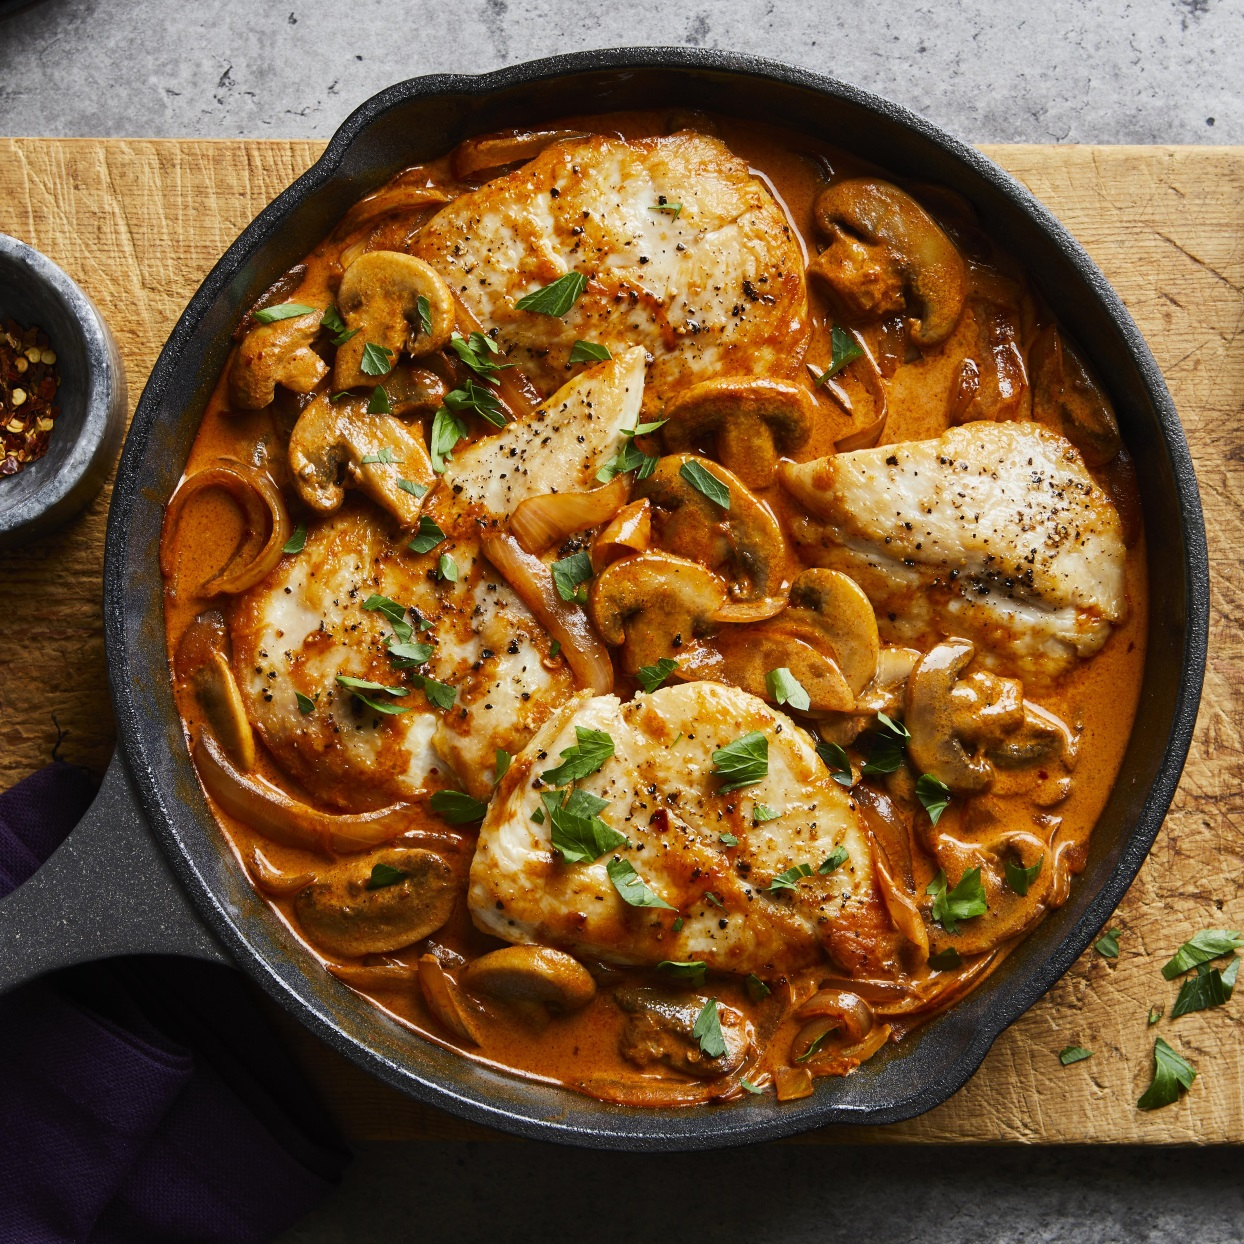 Try this quick and easy one-skillet version of the Hungarian classic chicken paprikash. Serve the chicken cutlets, mushrooms and creamy sauce over egg noodles with a green salad on the side. Source: EatingWell.com, December 2019